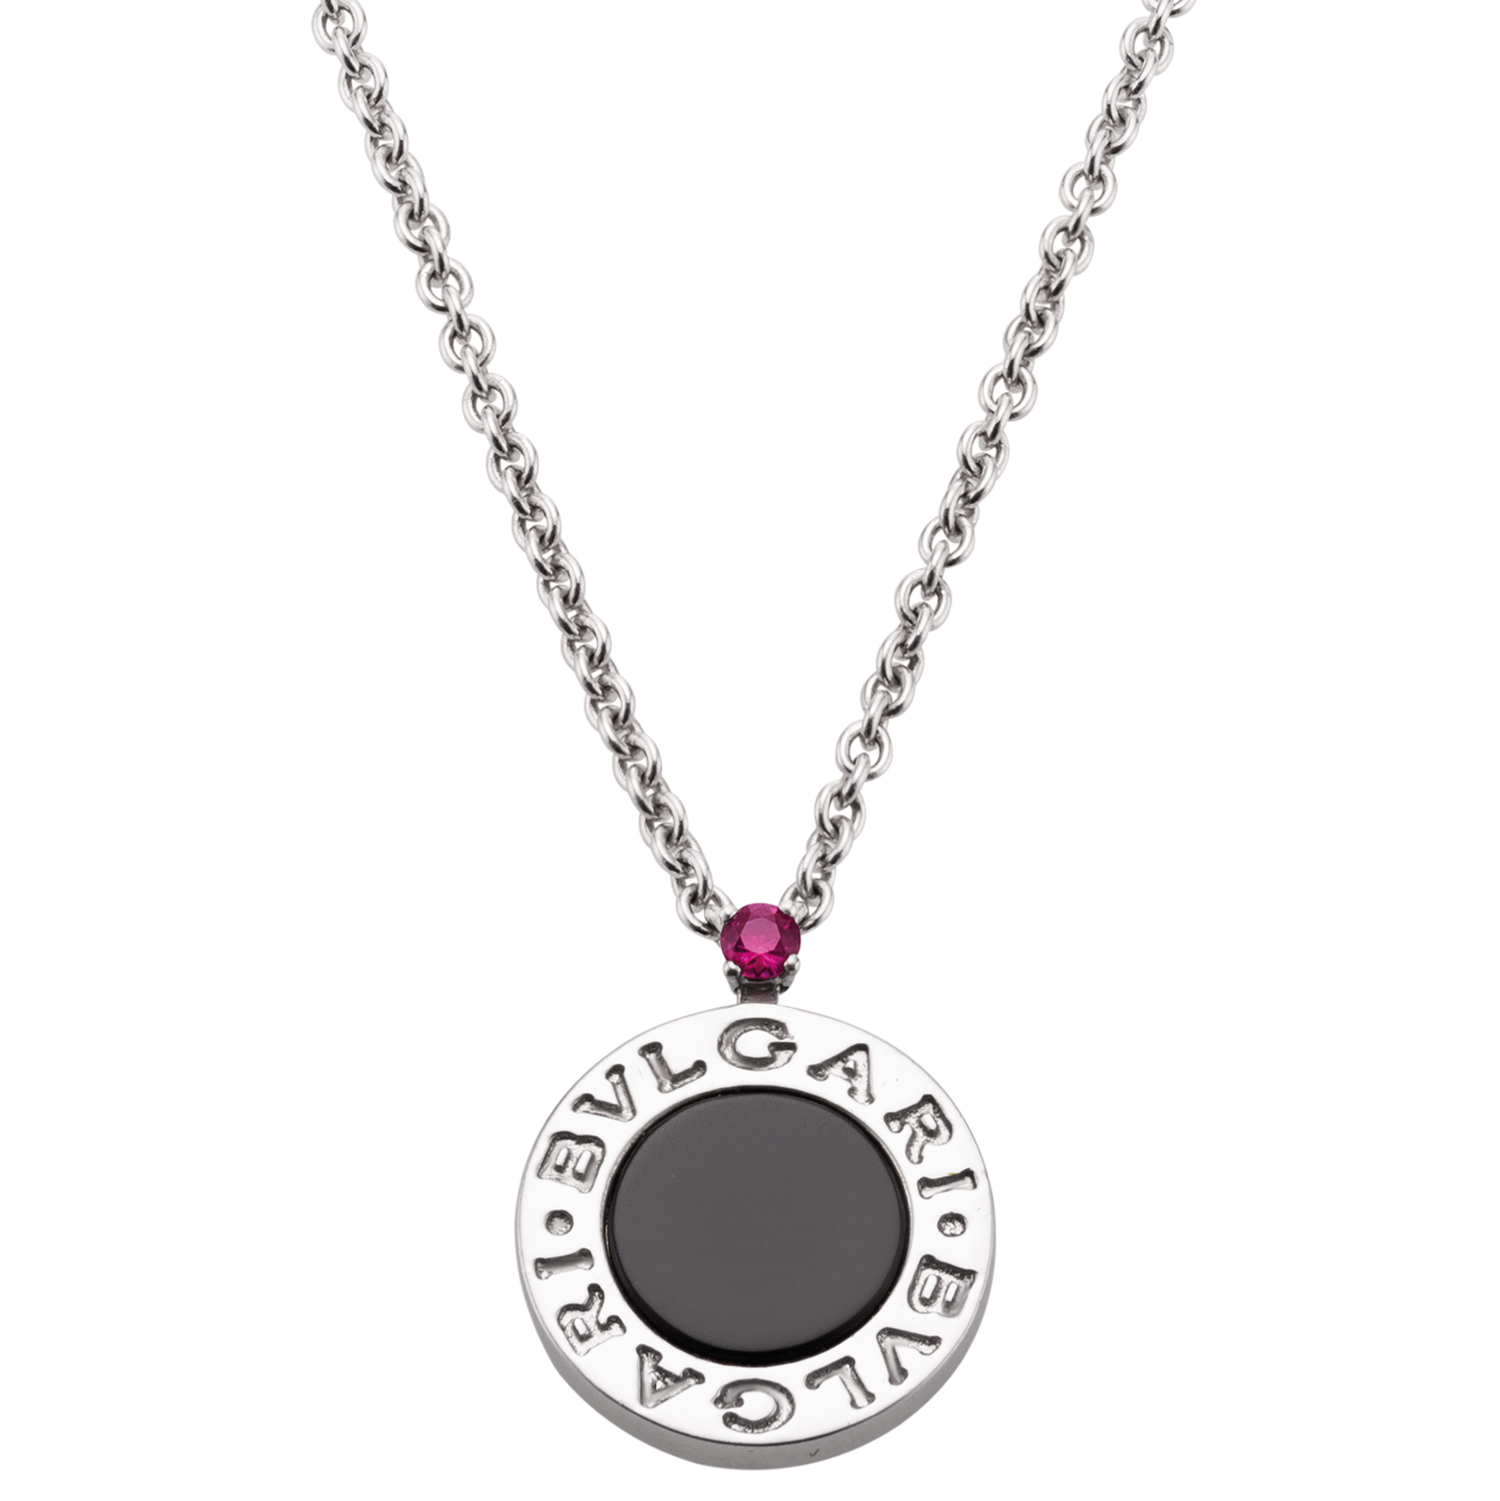 A new Bulgari silver and ruby necklace benefits Save the